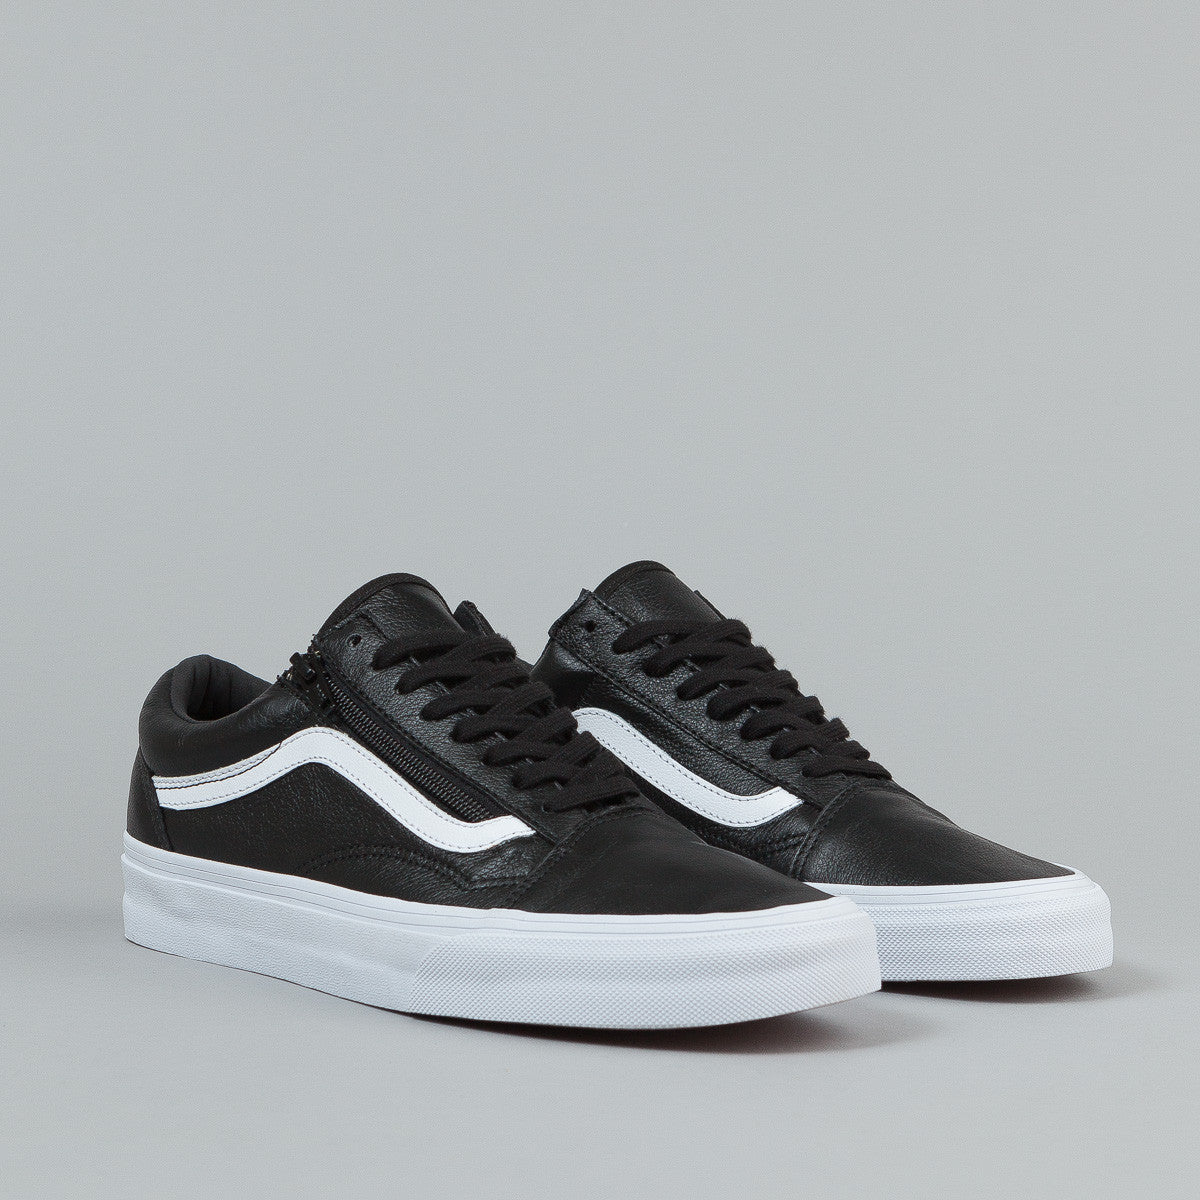 vans old skool zip shoes premium leather black flatspot. Black Bedroom Furniture Sets. Home Design Ideas